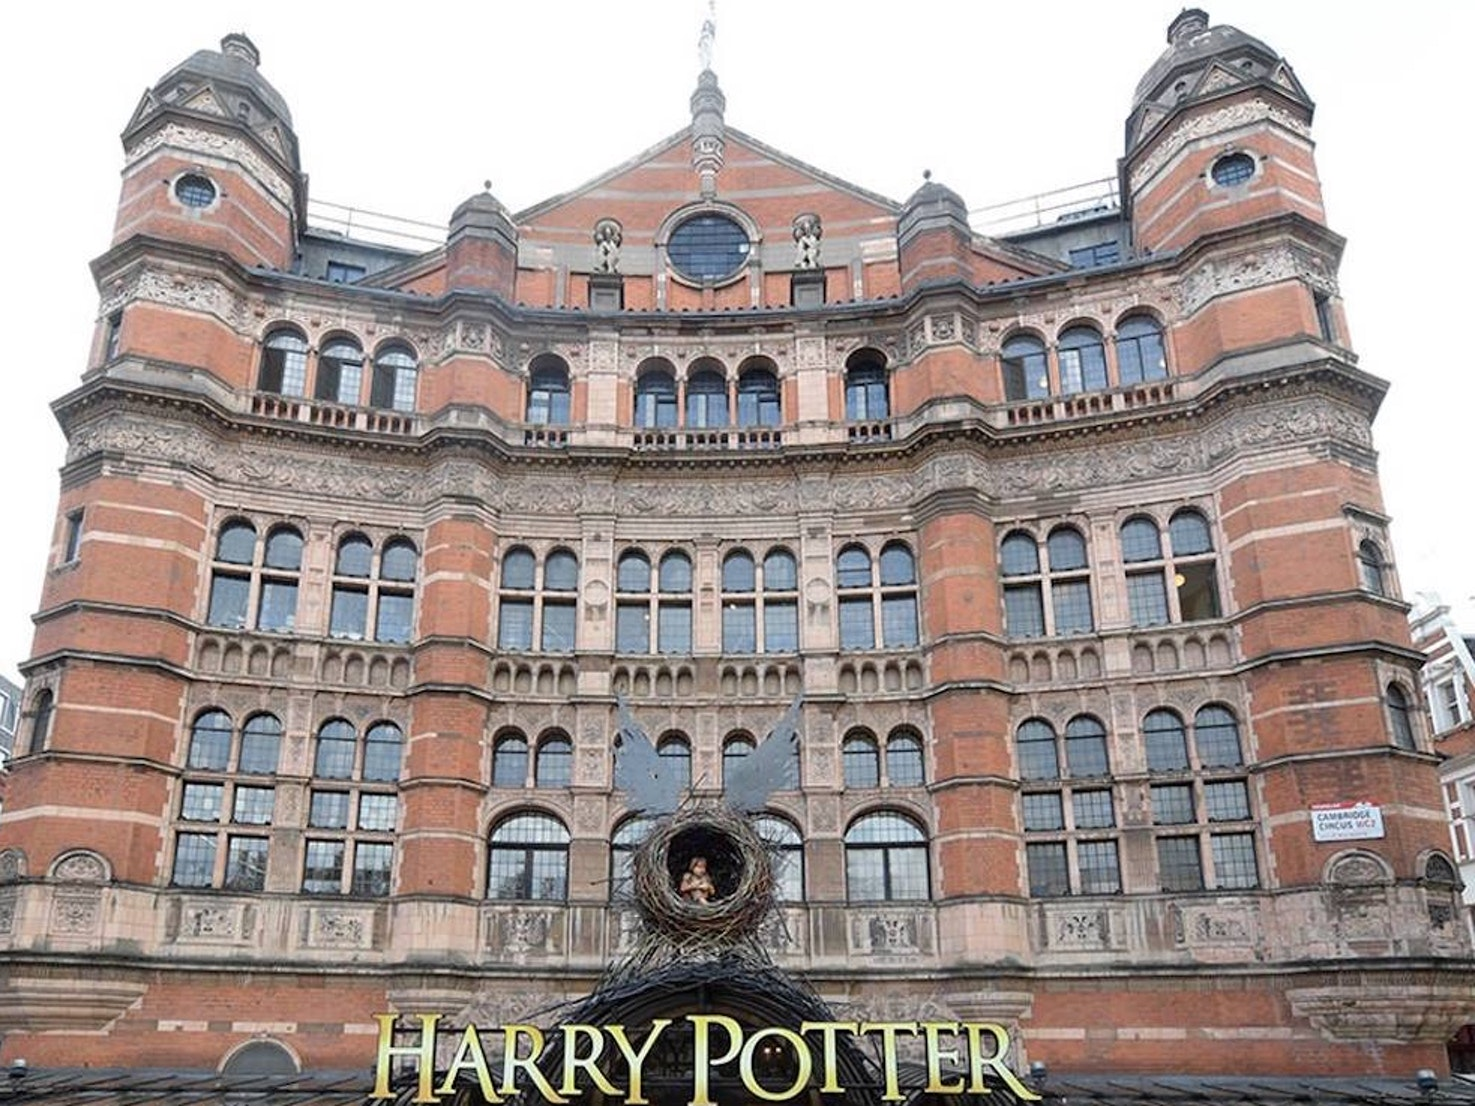 7 Good Things About 'Harry Potter and the Cursed Child'